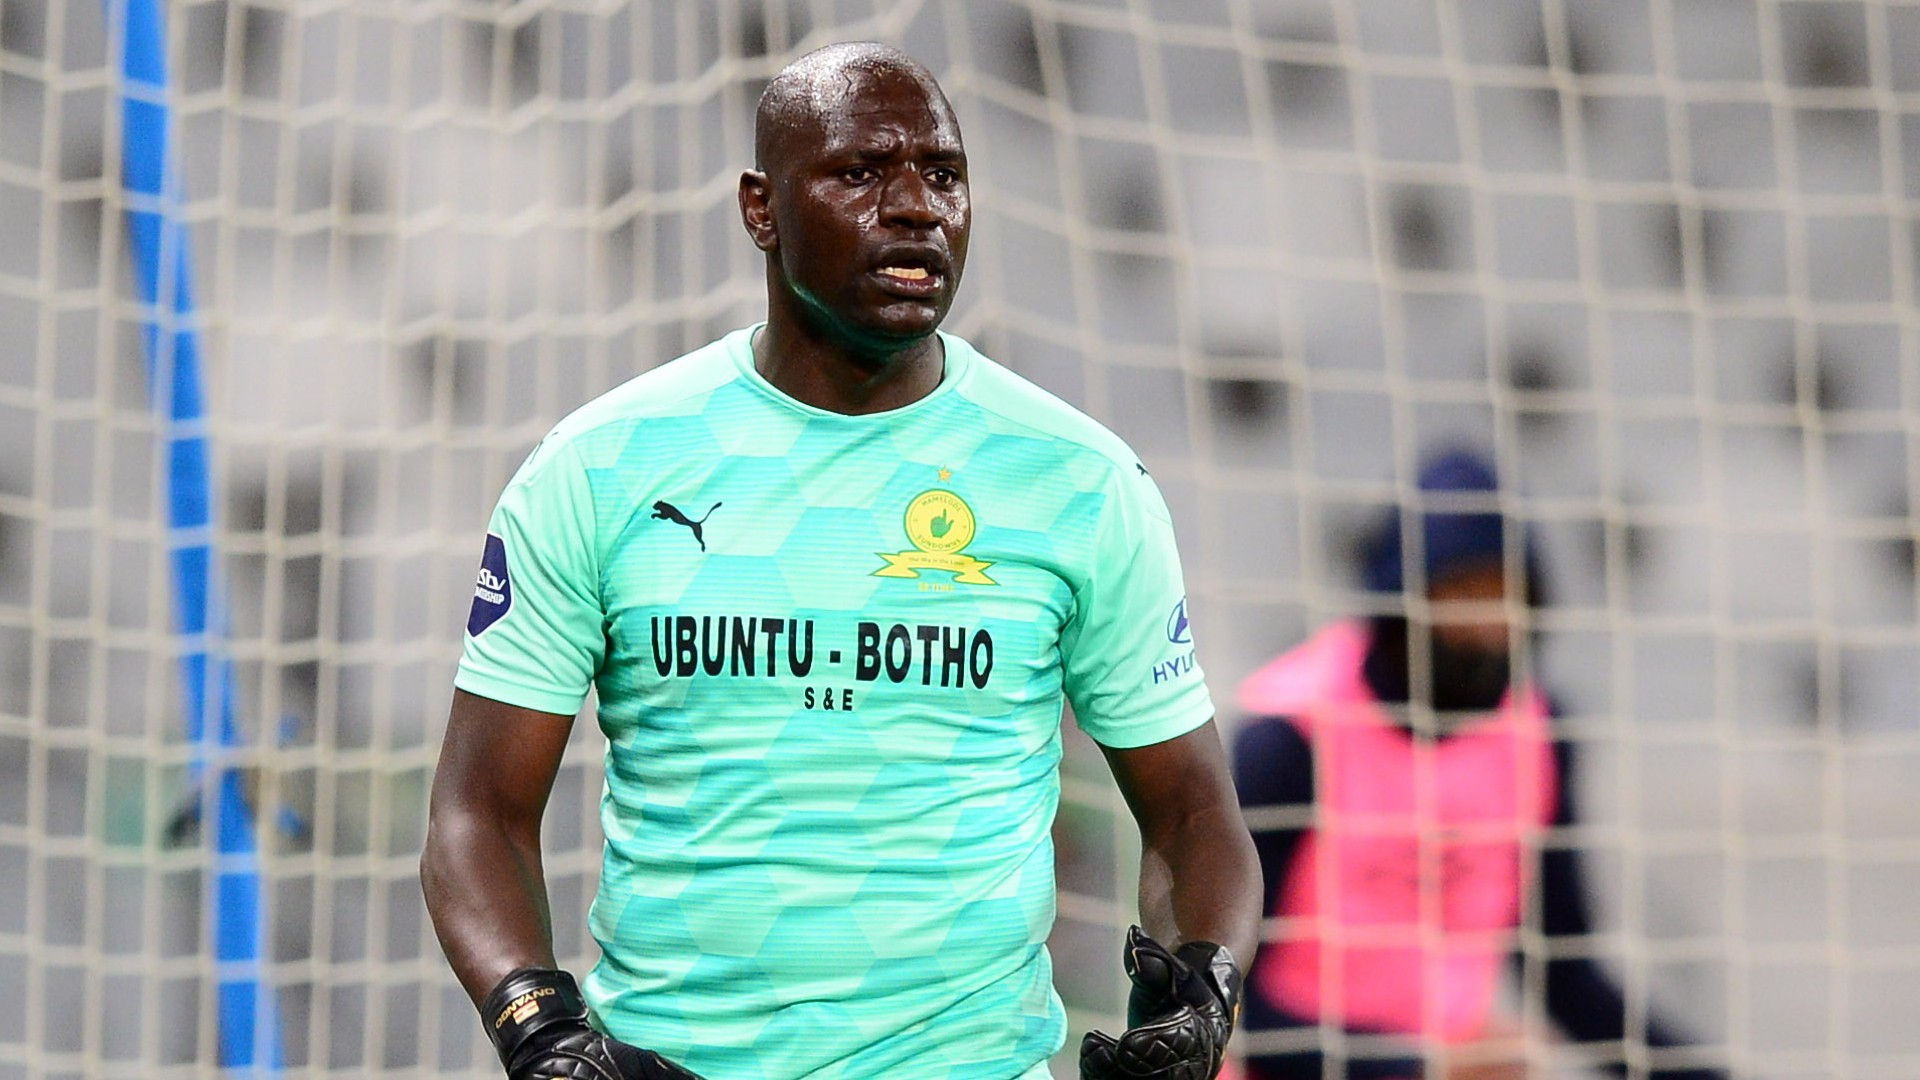 Mamelodi Sundowns' Onyango lauds win over Orlando Pirates as 'good preparation' for Caf CL